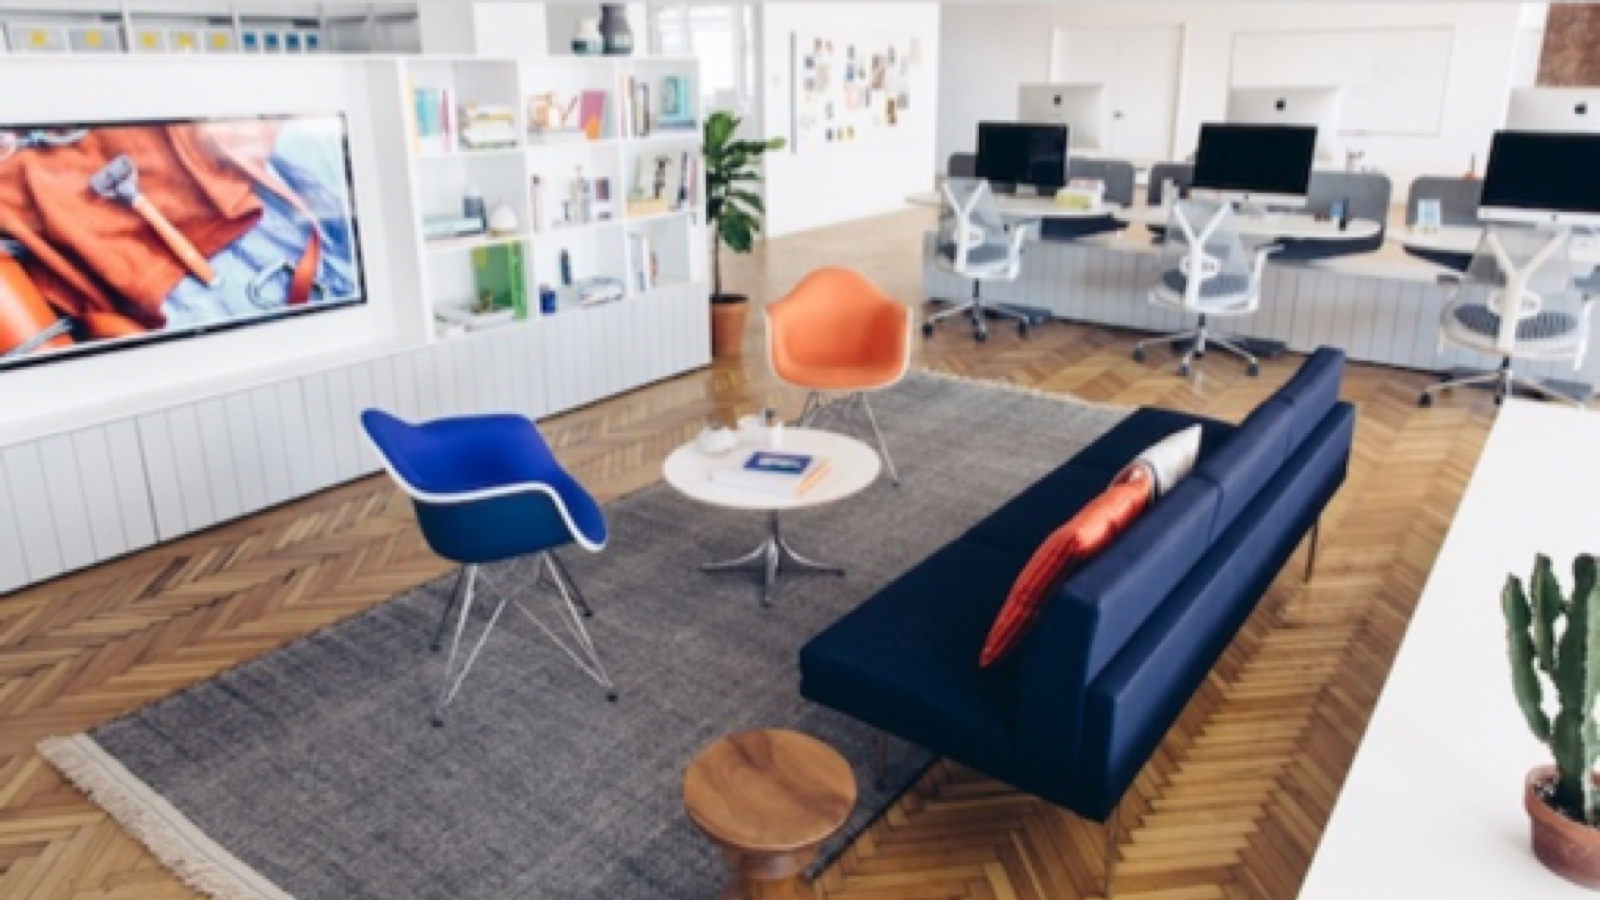 Modern white office with navy sofa, Nelson Pedestal Table, and upholstered Eames shell chairs in royal blue and orange next to an open white bookshelf with TV console. Nearby are a row of desks with computer monitors and Sayl work chairs.